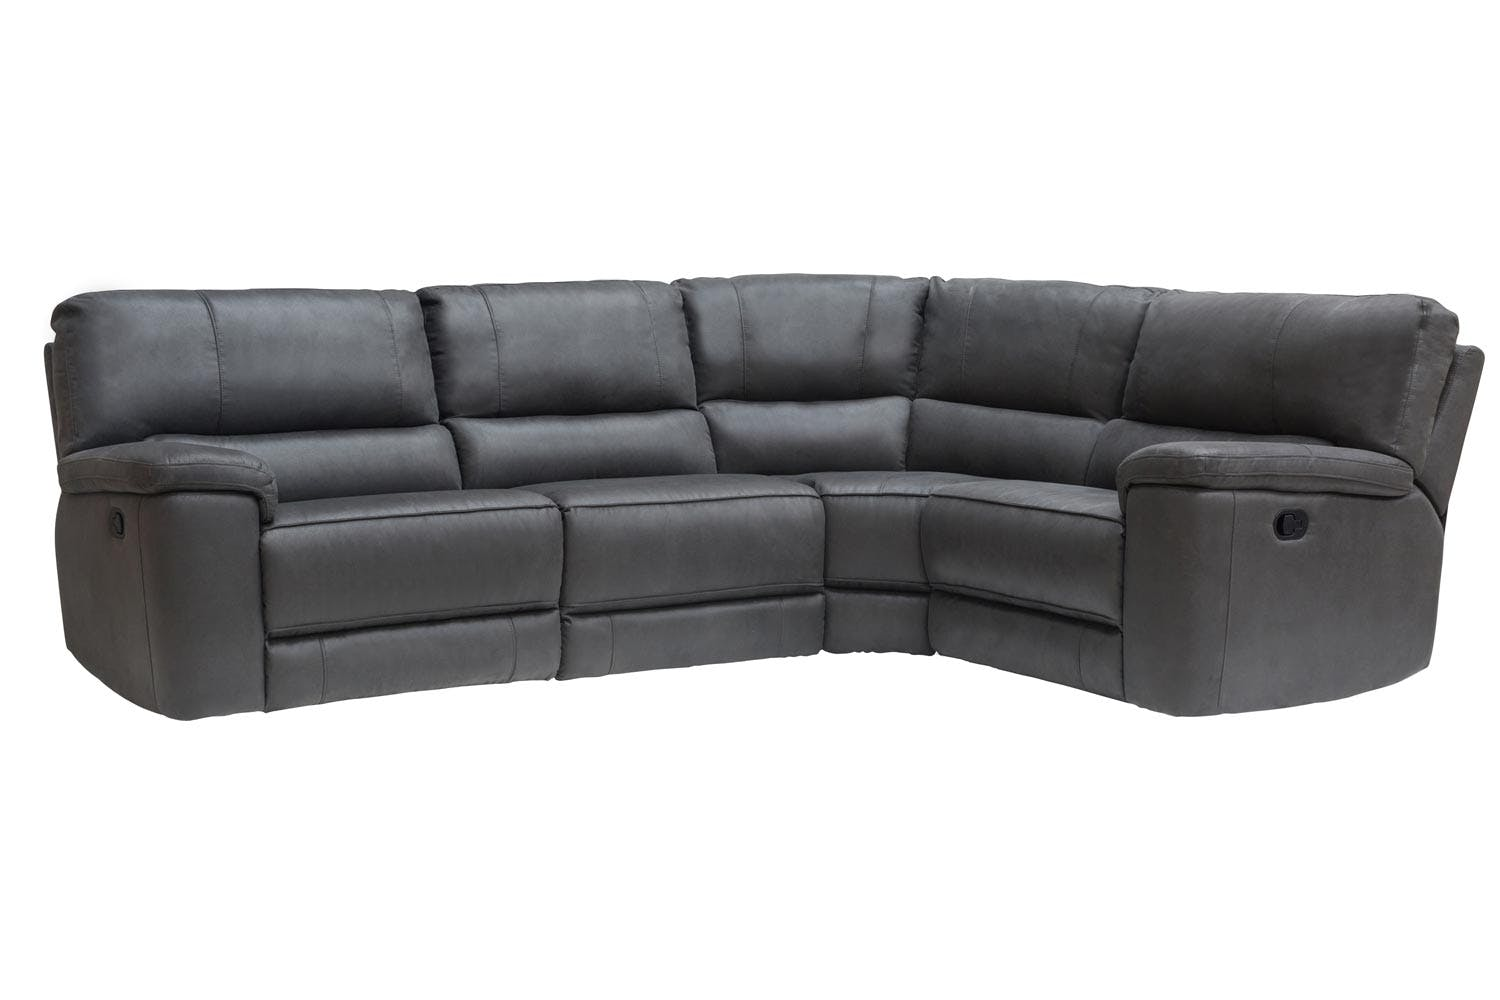 Corner sofas harveys for Phoebe corner sofa